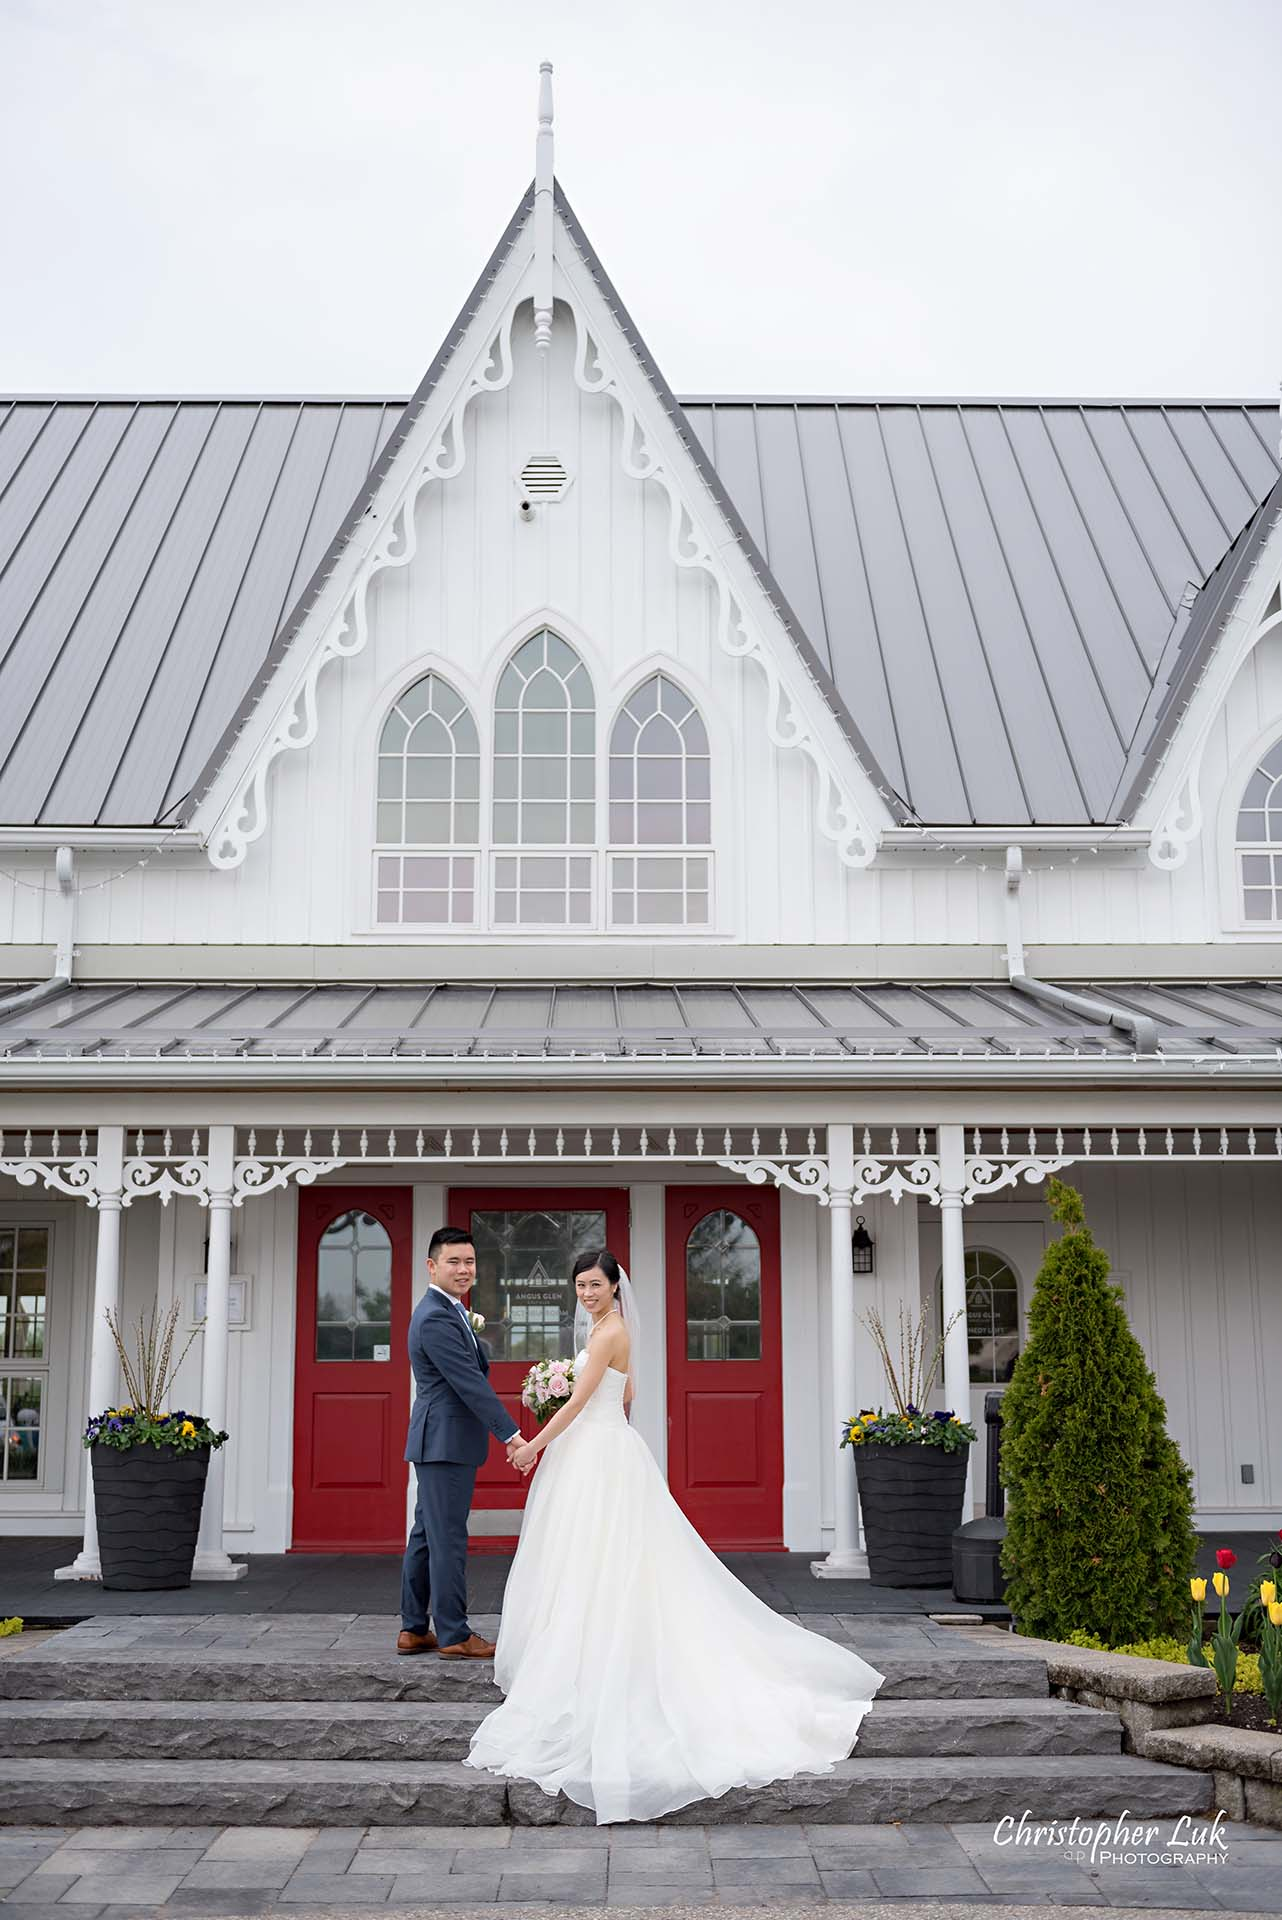 Christopher Luk Toronto Wedding Photographer Angus Glen Golf Club Markham Victoria Room Kennedy Loft Main Historic Estate Building Entrance Together Natural Candid Photojournalistic Bride Groom Bridal Gown Dress Train Staircase Looking at Camera Portrait